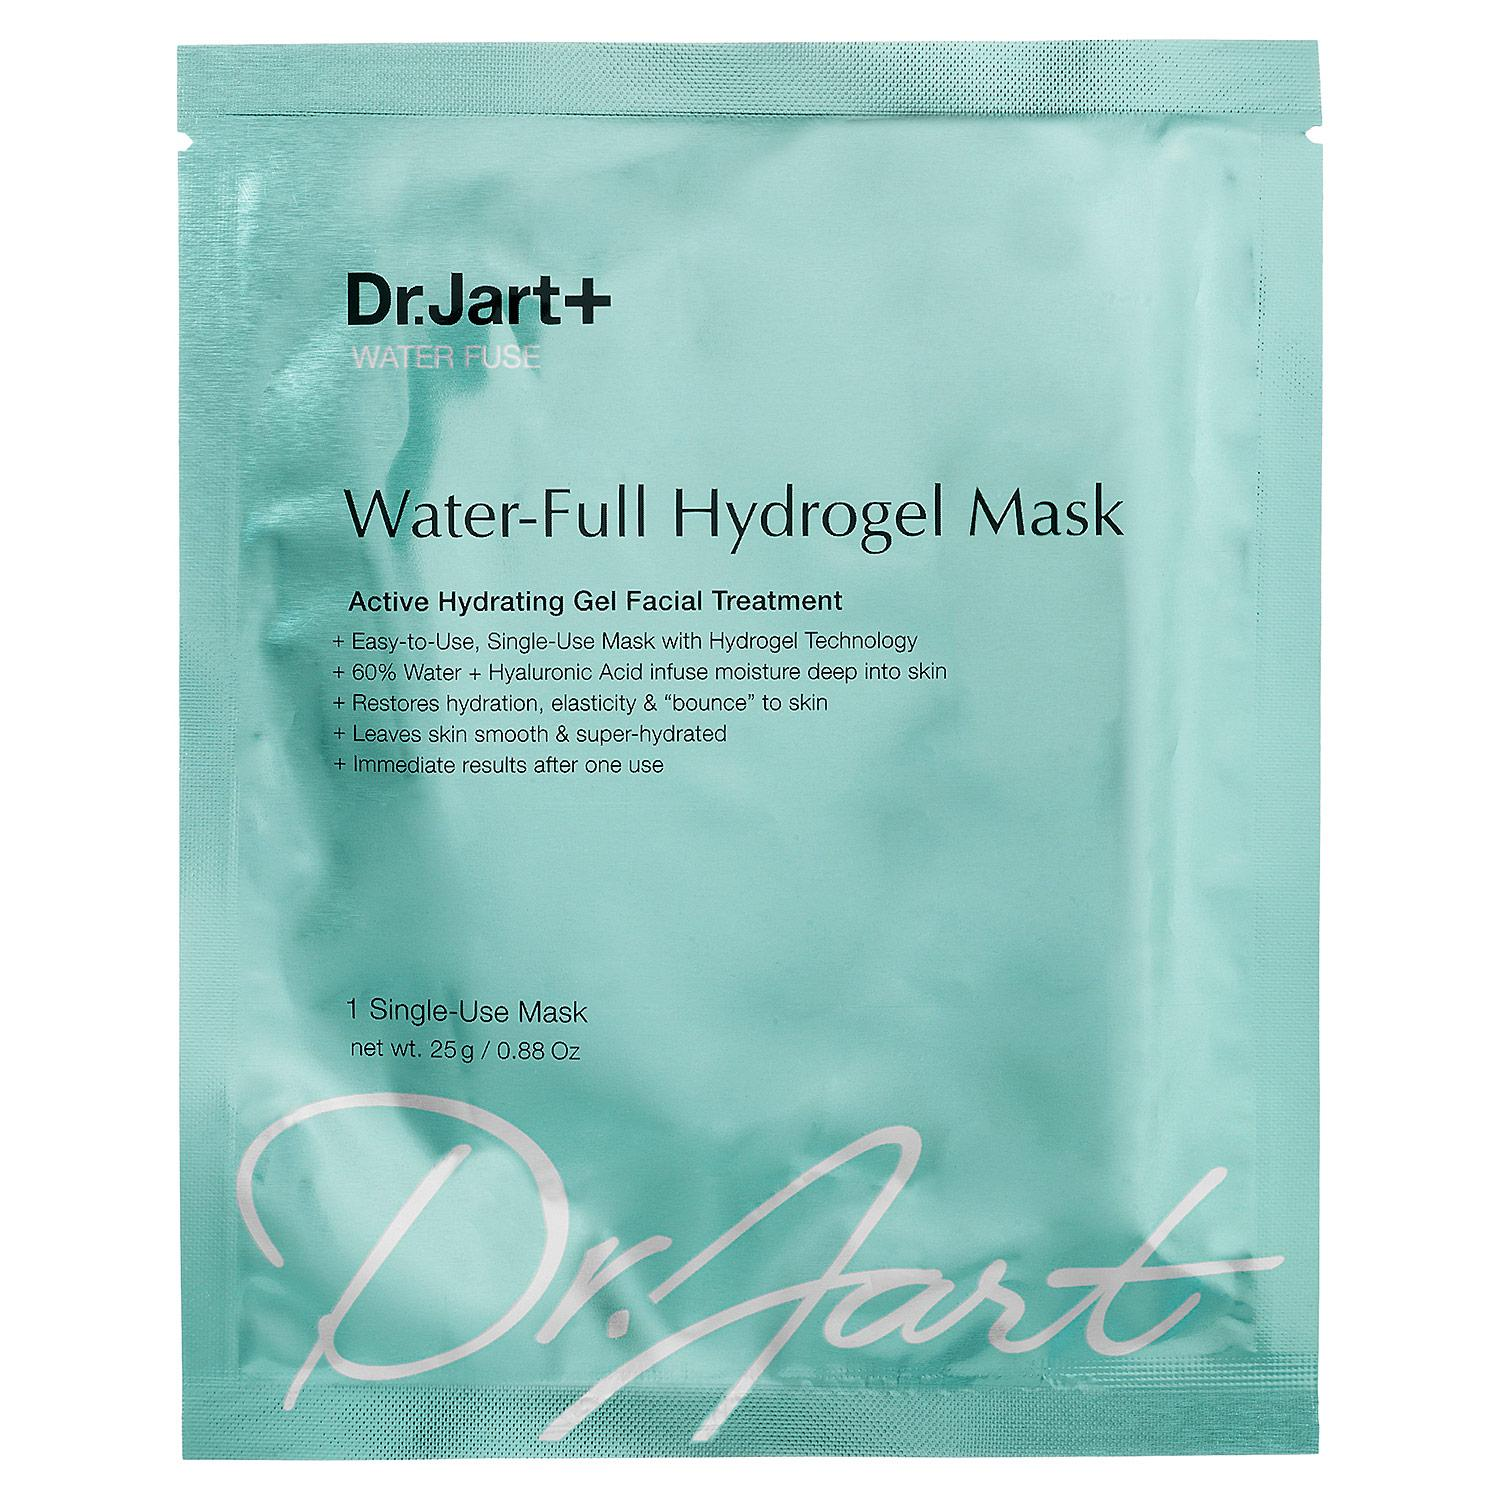 Water Fuse Water-Full Hydrogel Mask